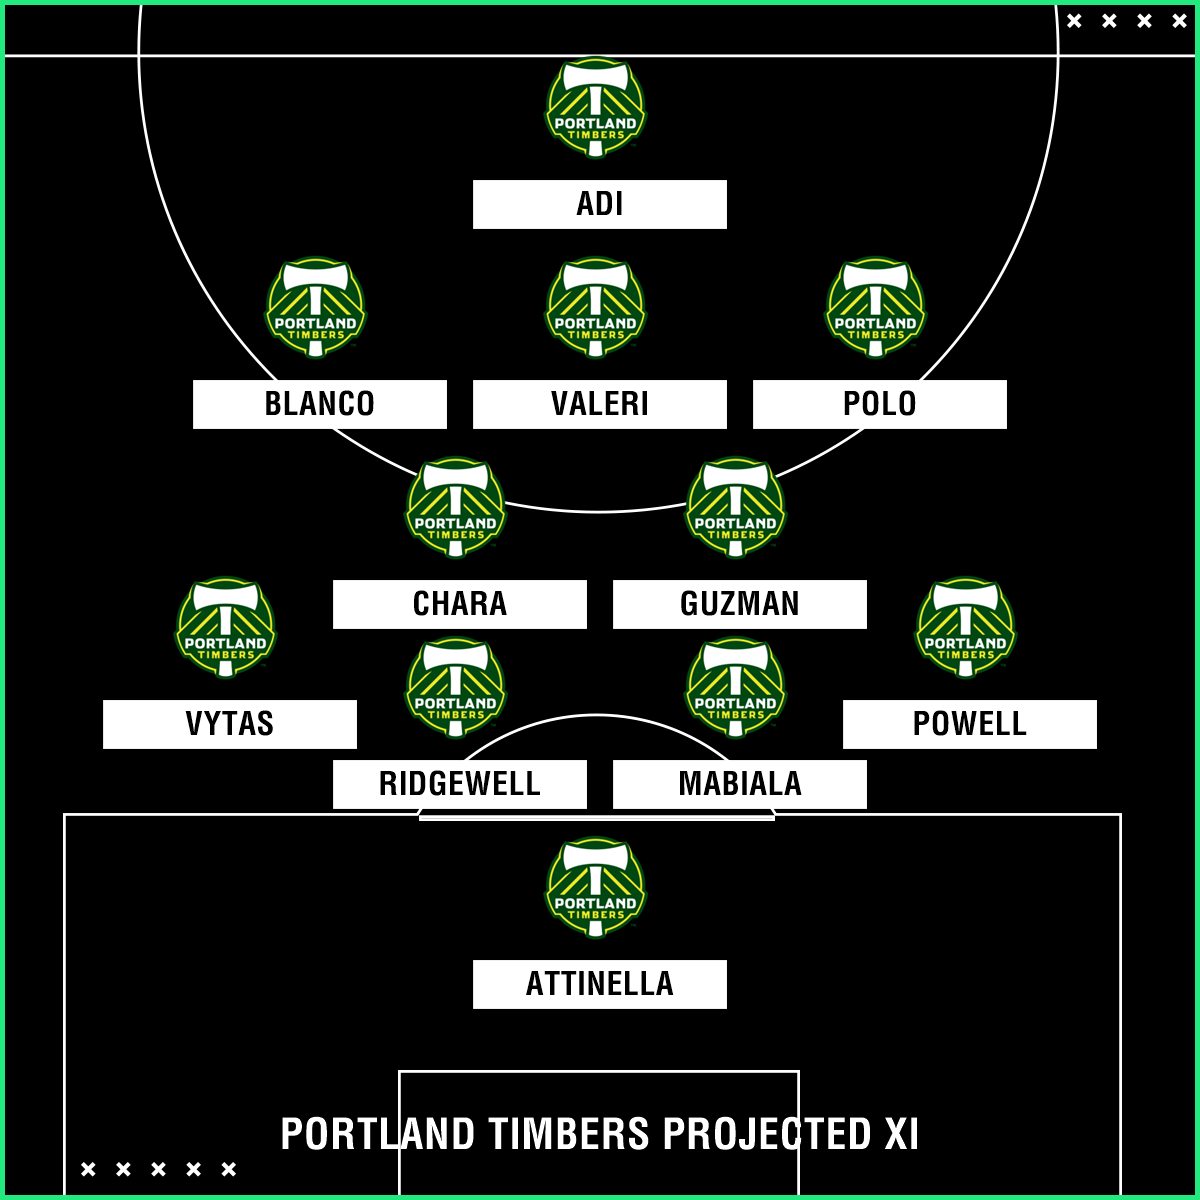 Portland Timbers: Portland Timbers 2018 Season Preview: Roster, Projected